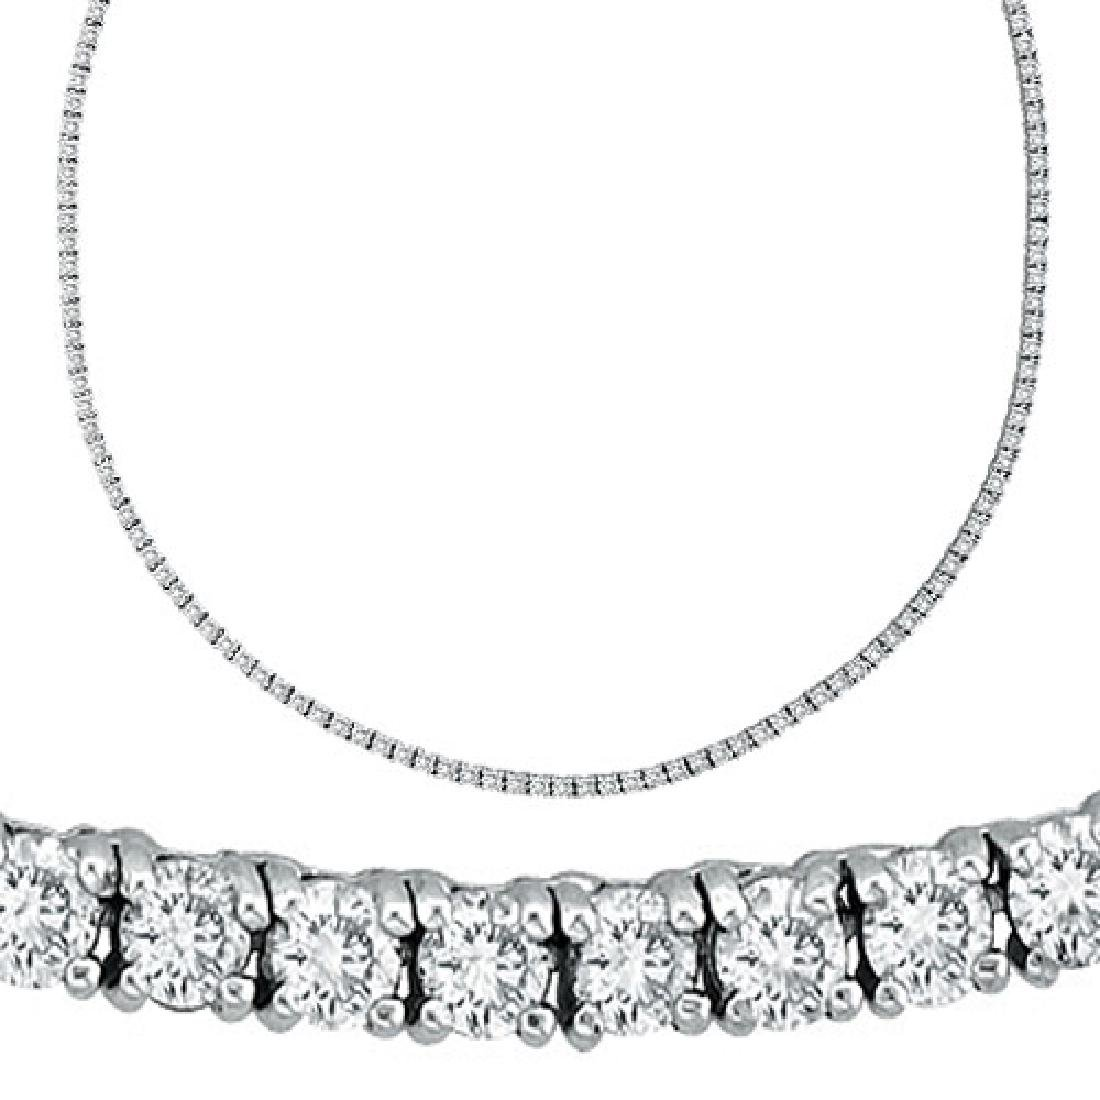 50.0 CTW Certified SI Diamond Necklace 18K White Gold